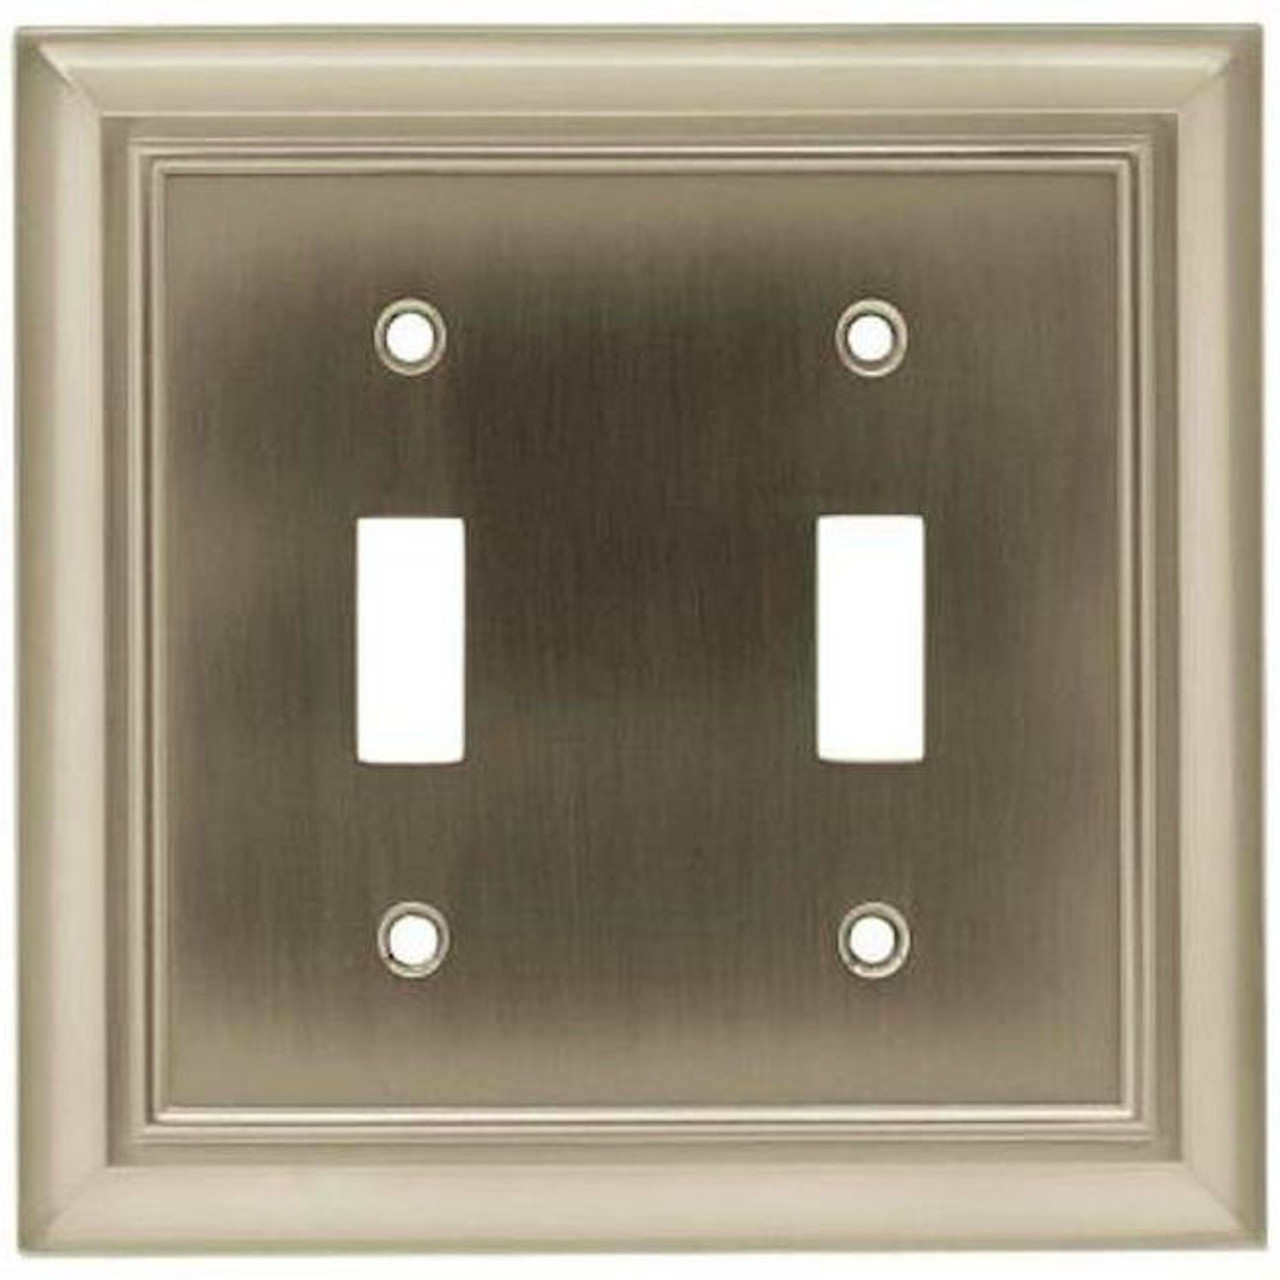 Franklin Brass W35220-SN Architect Satin Nickel Double Switch Cover Plate